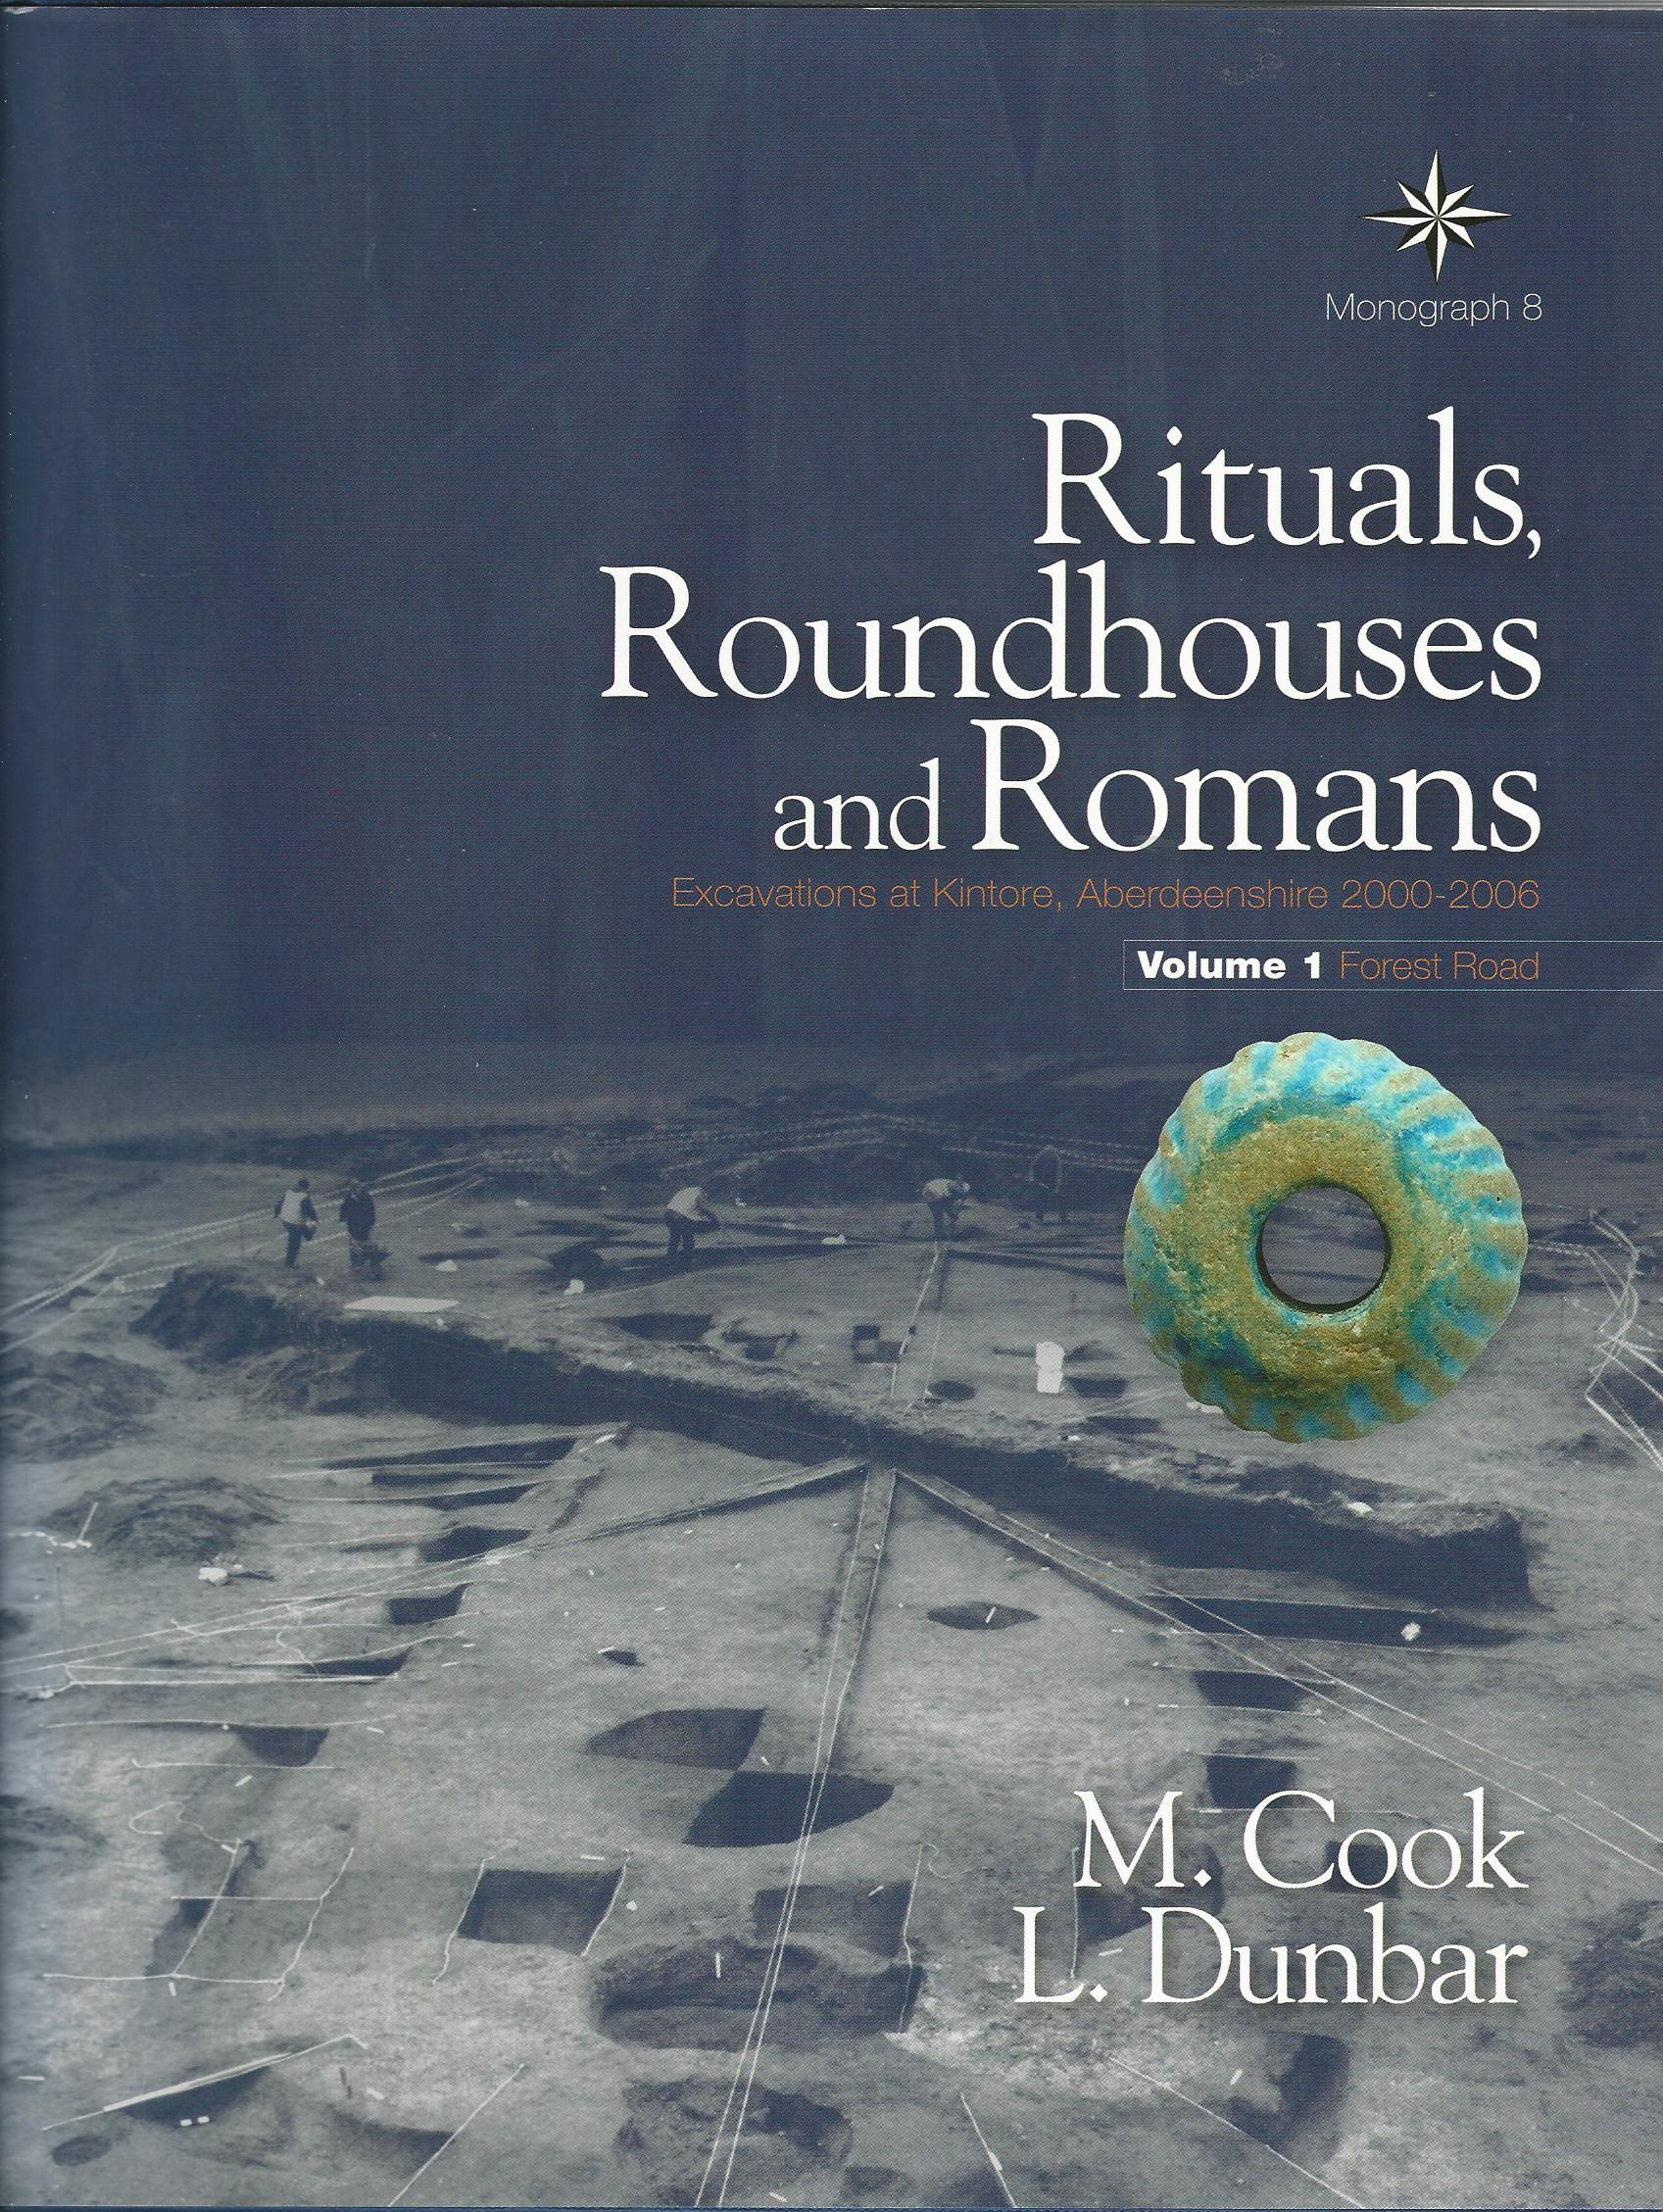 Image for Rituals, Roundhouses and Romans: Excavations at Kintore, Aberdeenshire 2000-2006 Volume 1 - Forest Road